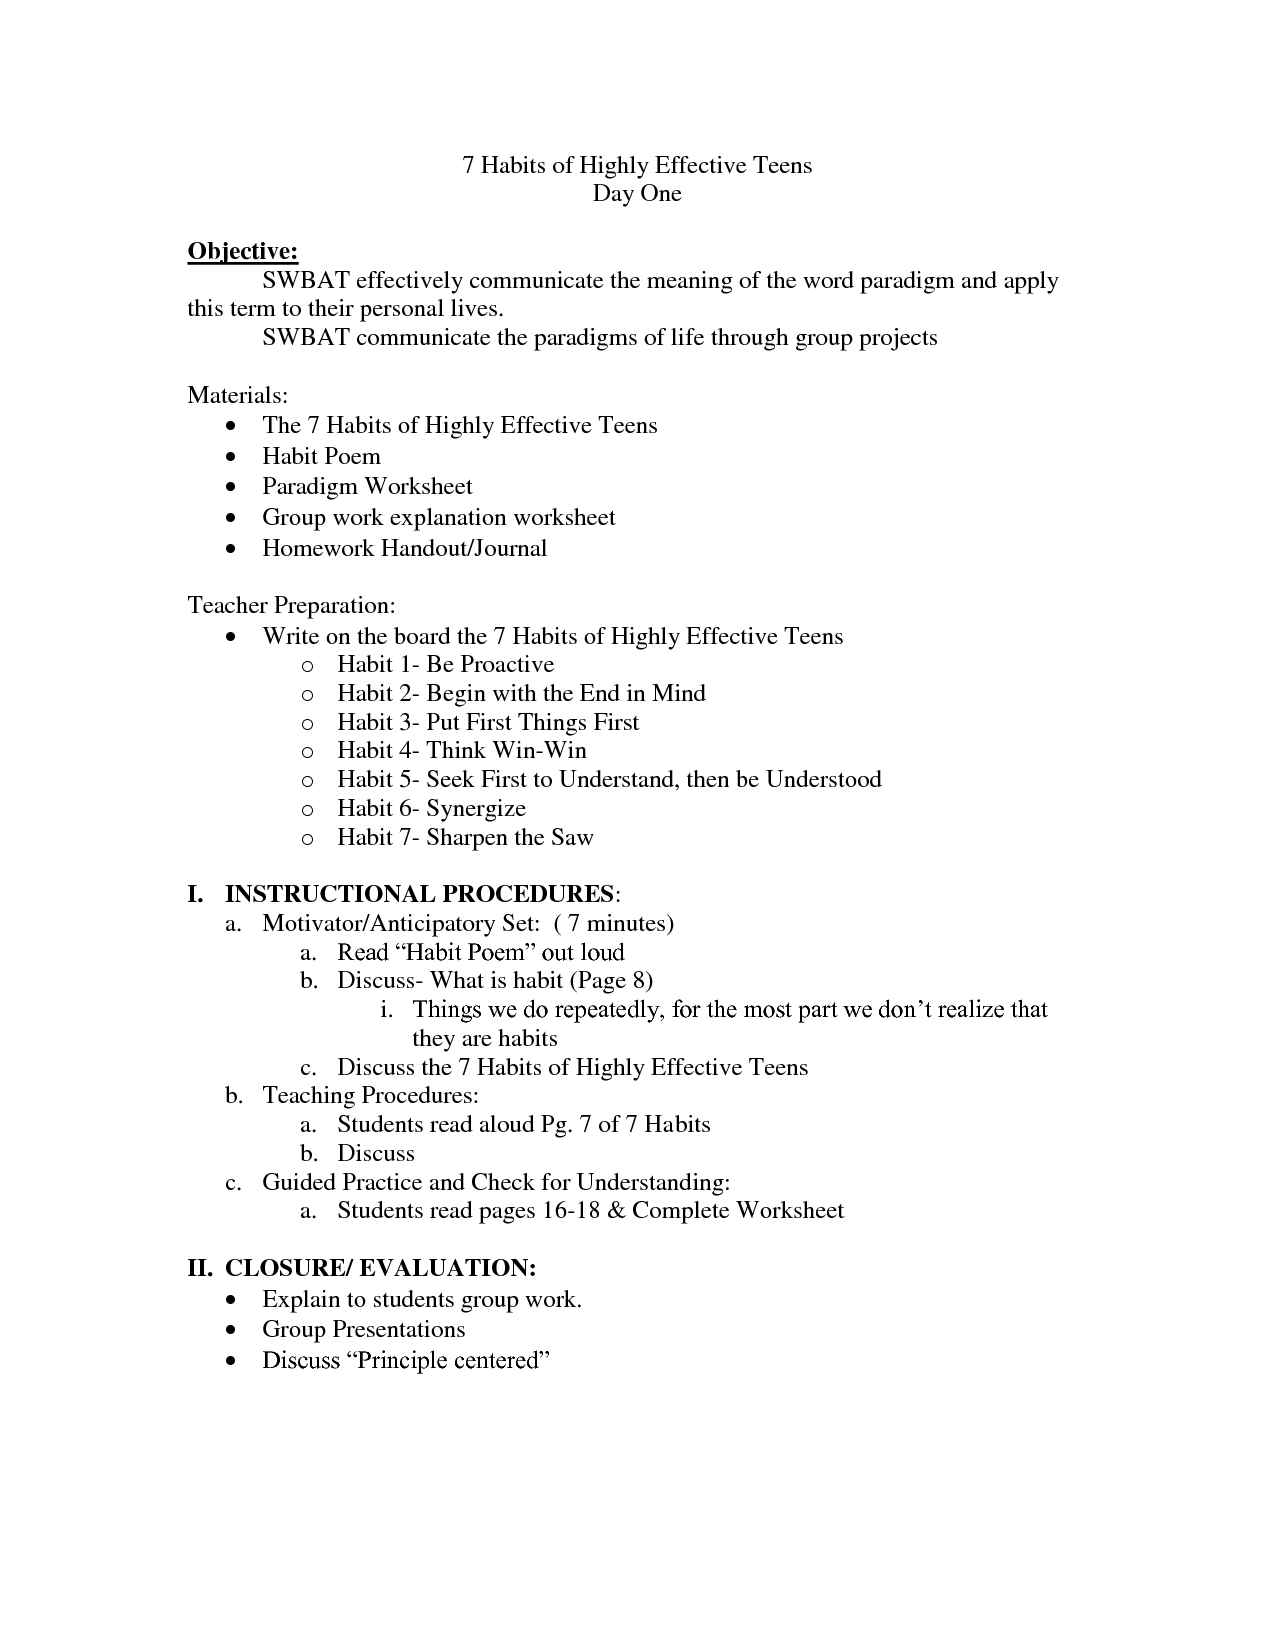 7 Habits Of Highly Effective Teens Worksheet